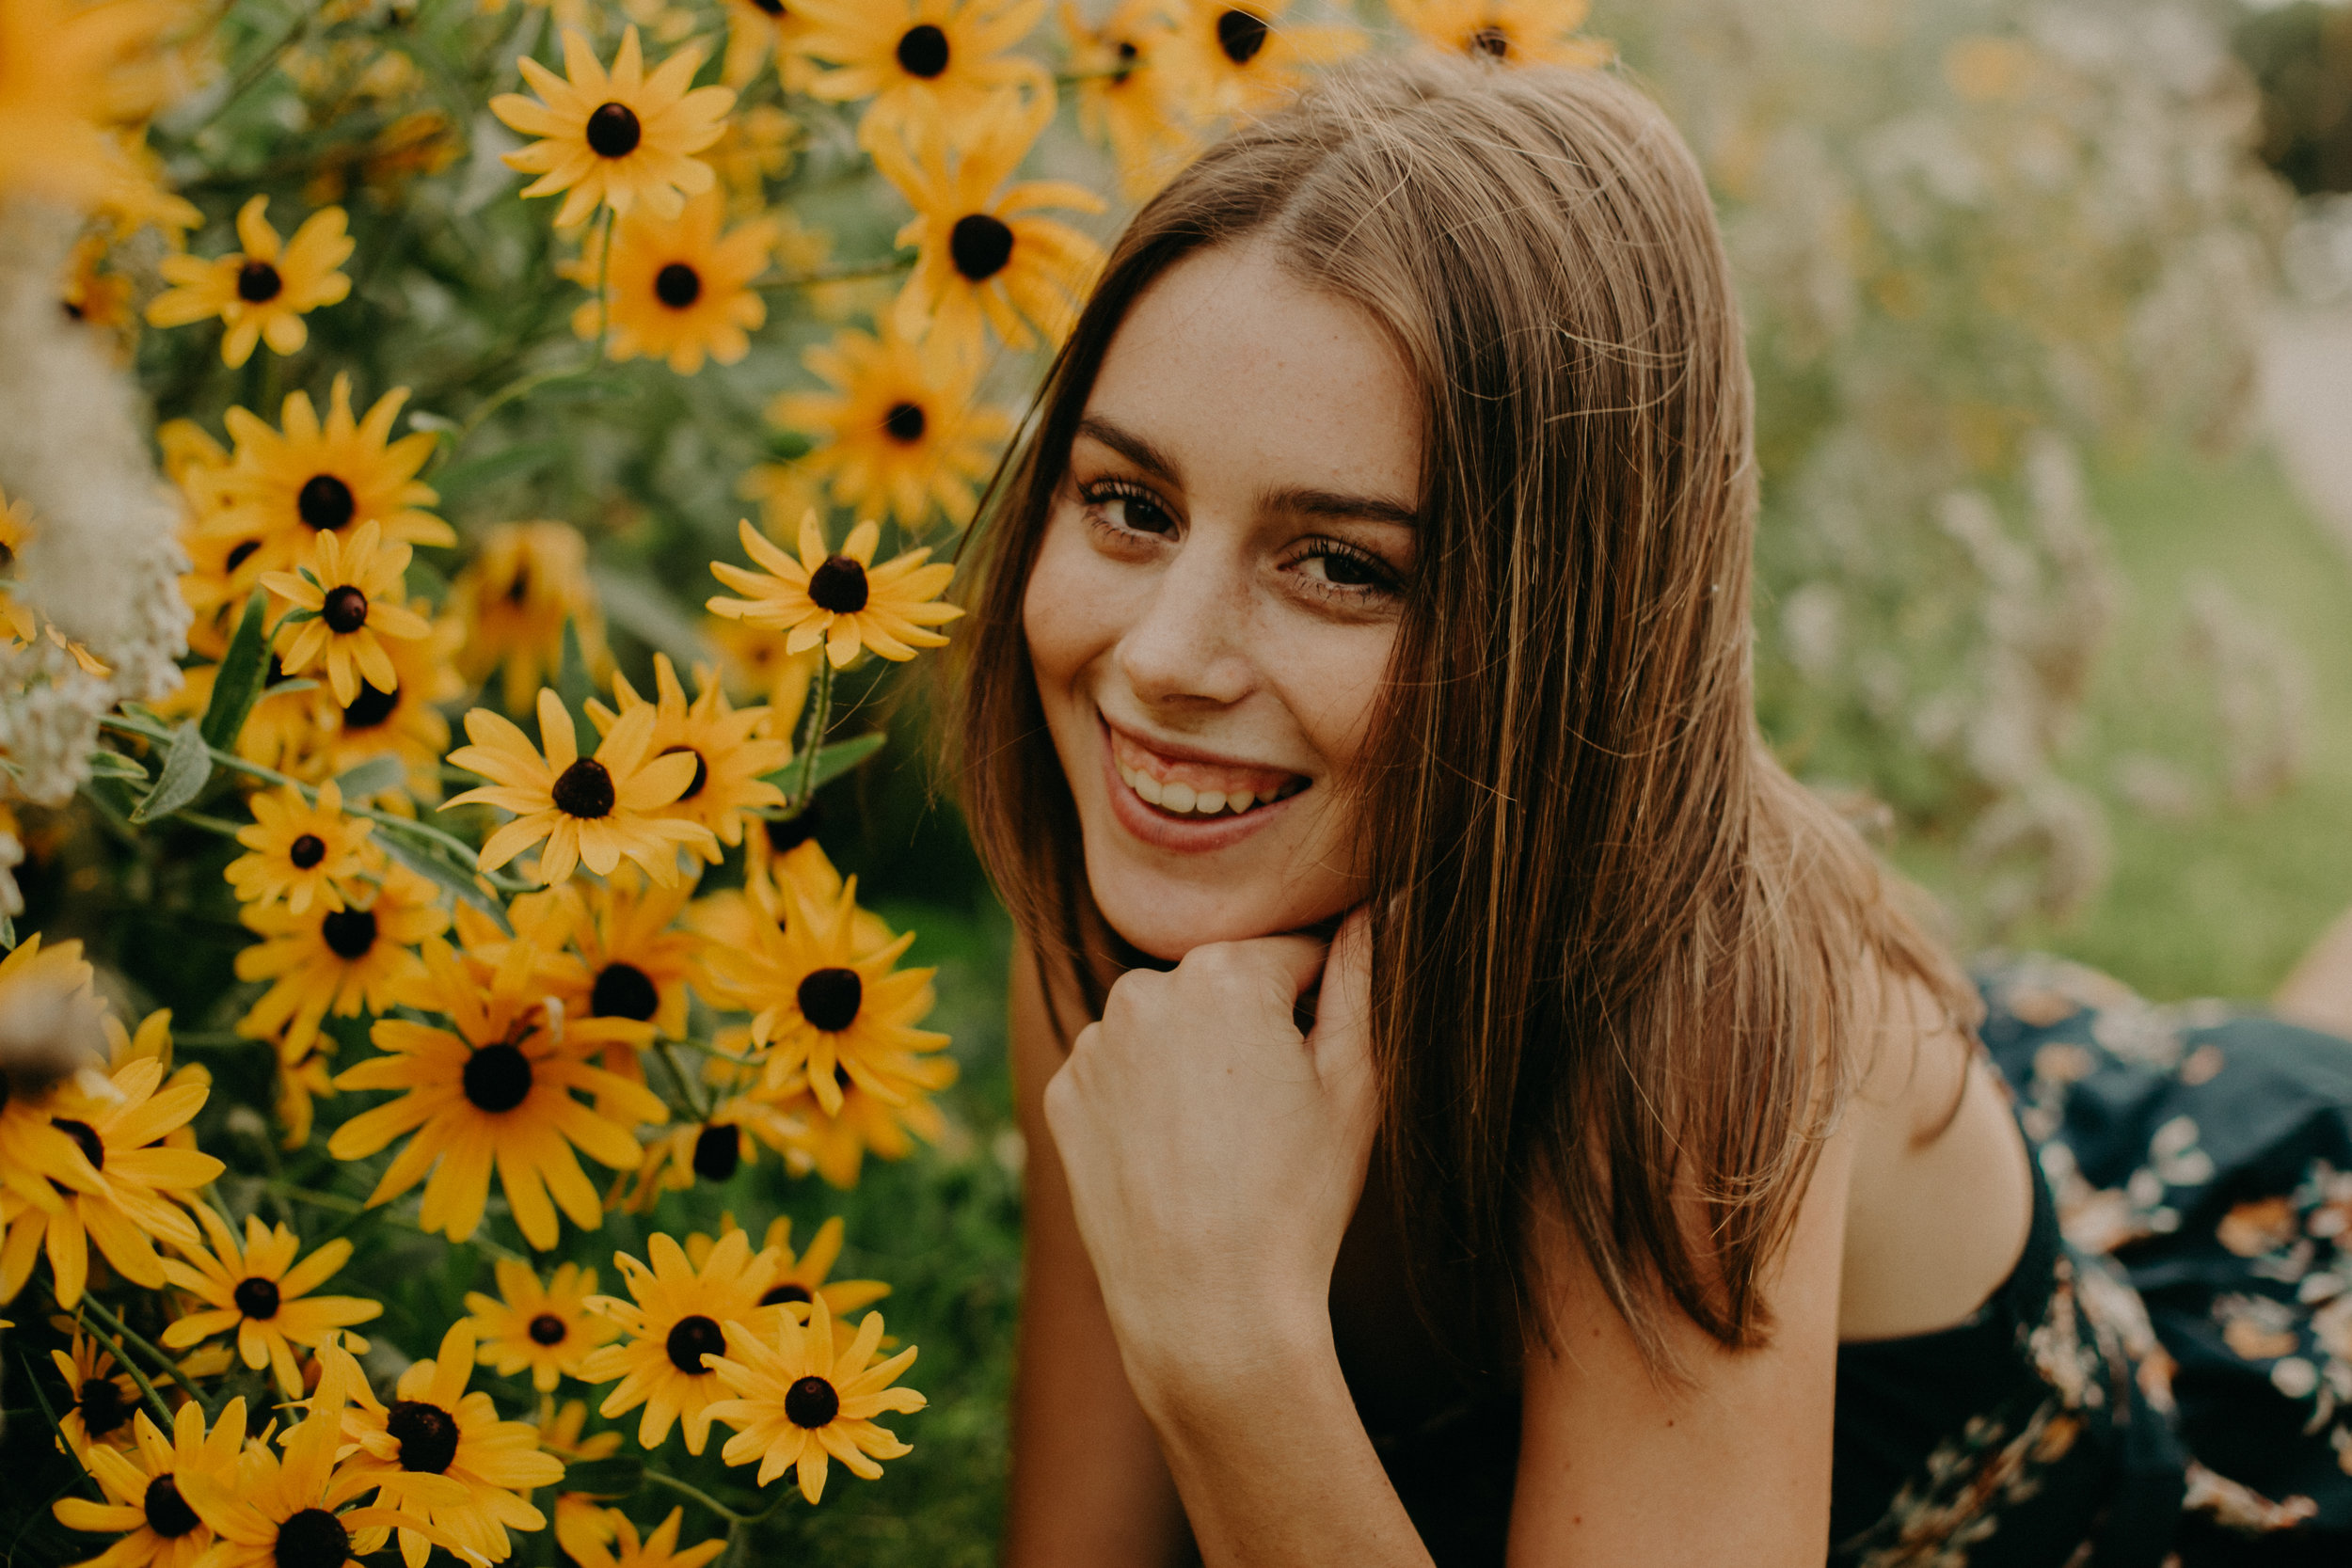 Andrea Wagner Photography makes senior laugh during senior photos in daisy field in Stillwater MN